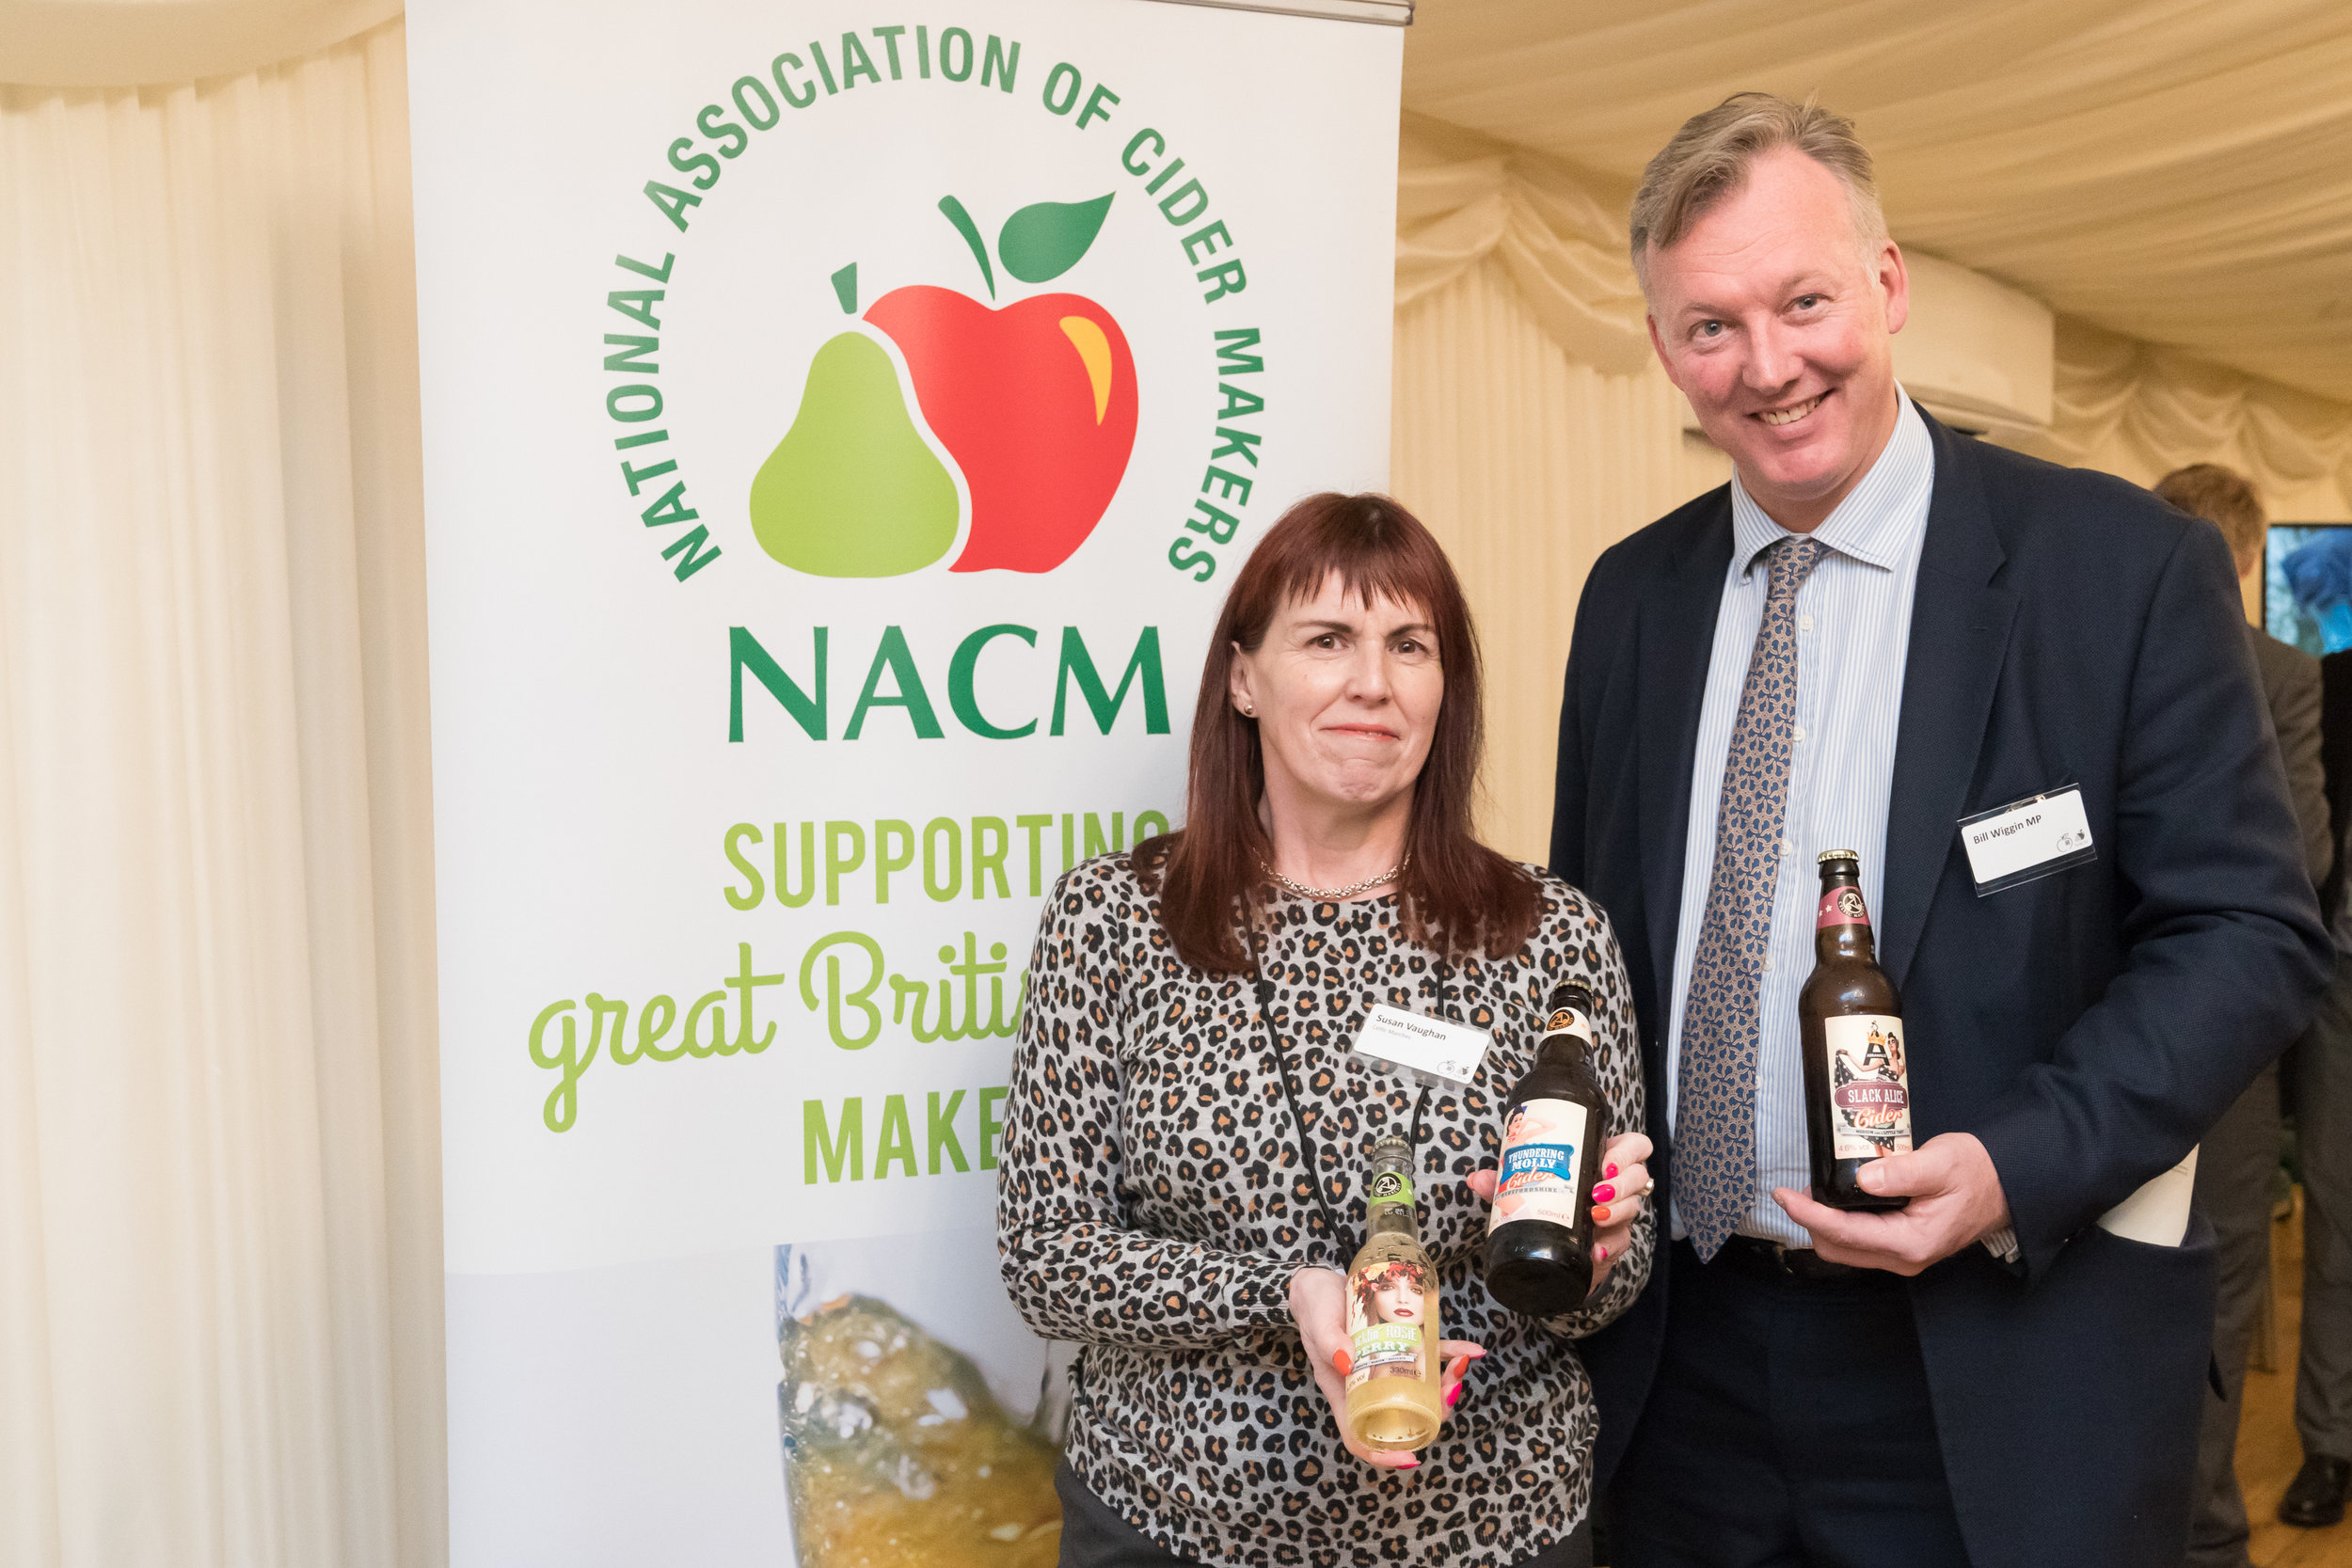 Susan Vaughan at NACM with local MP Bill Wiggin